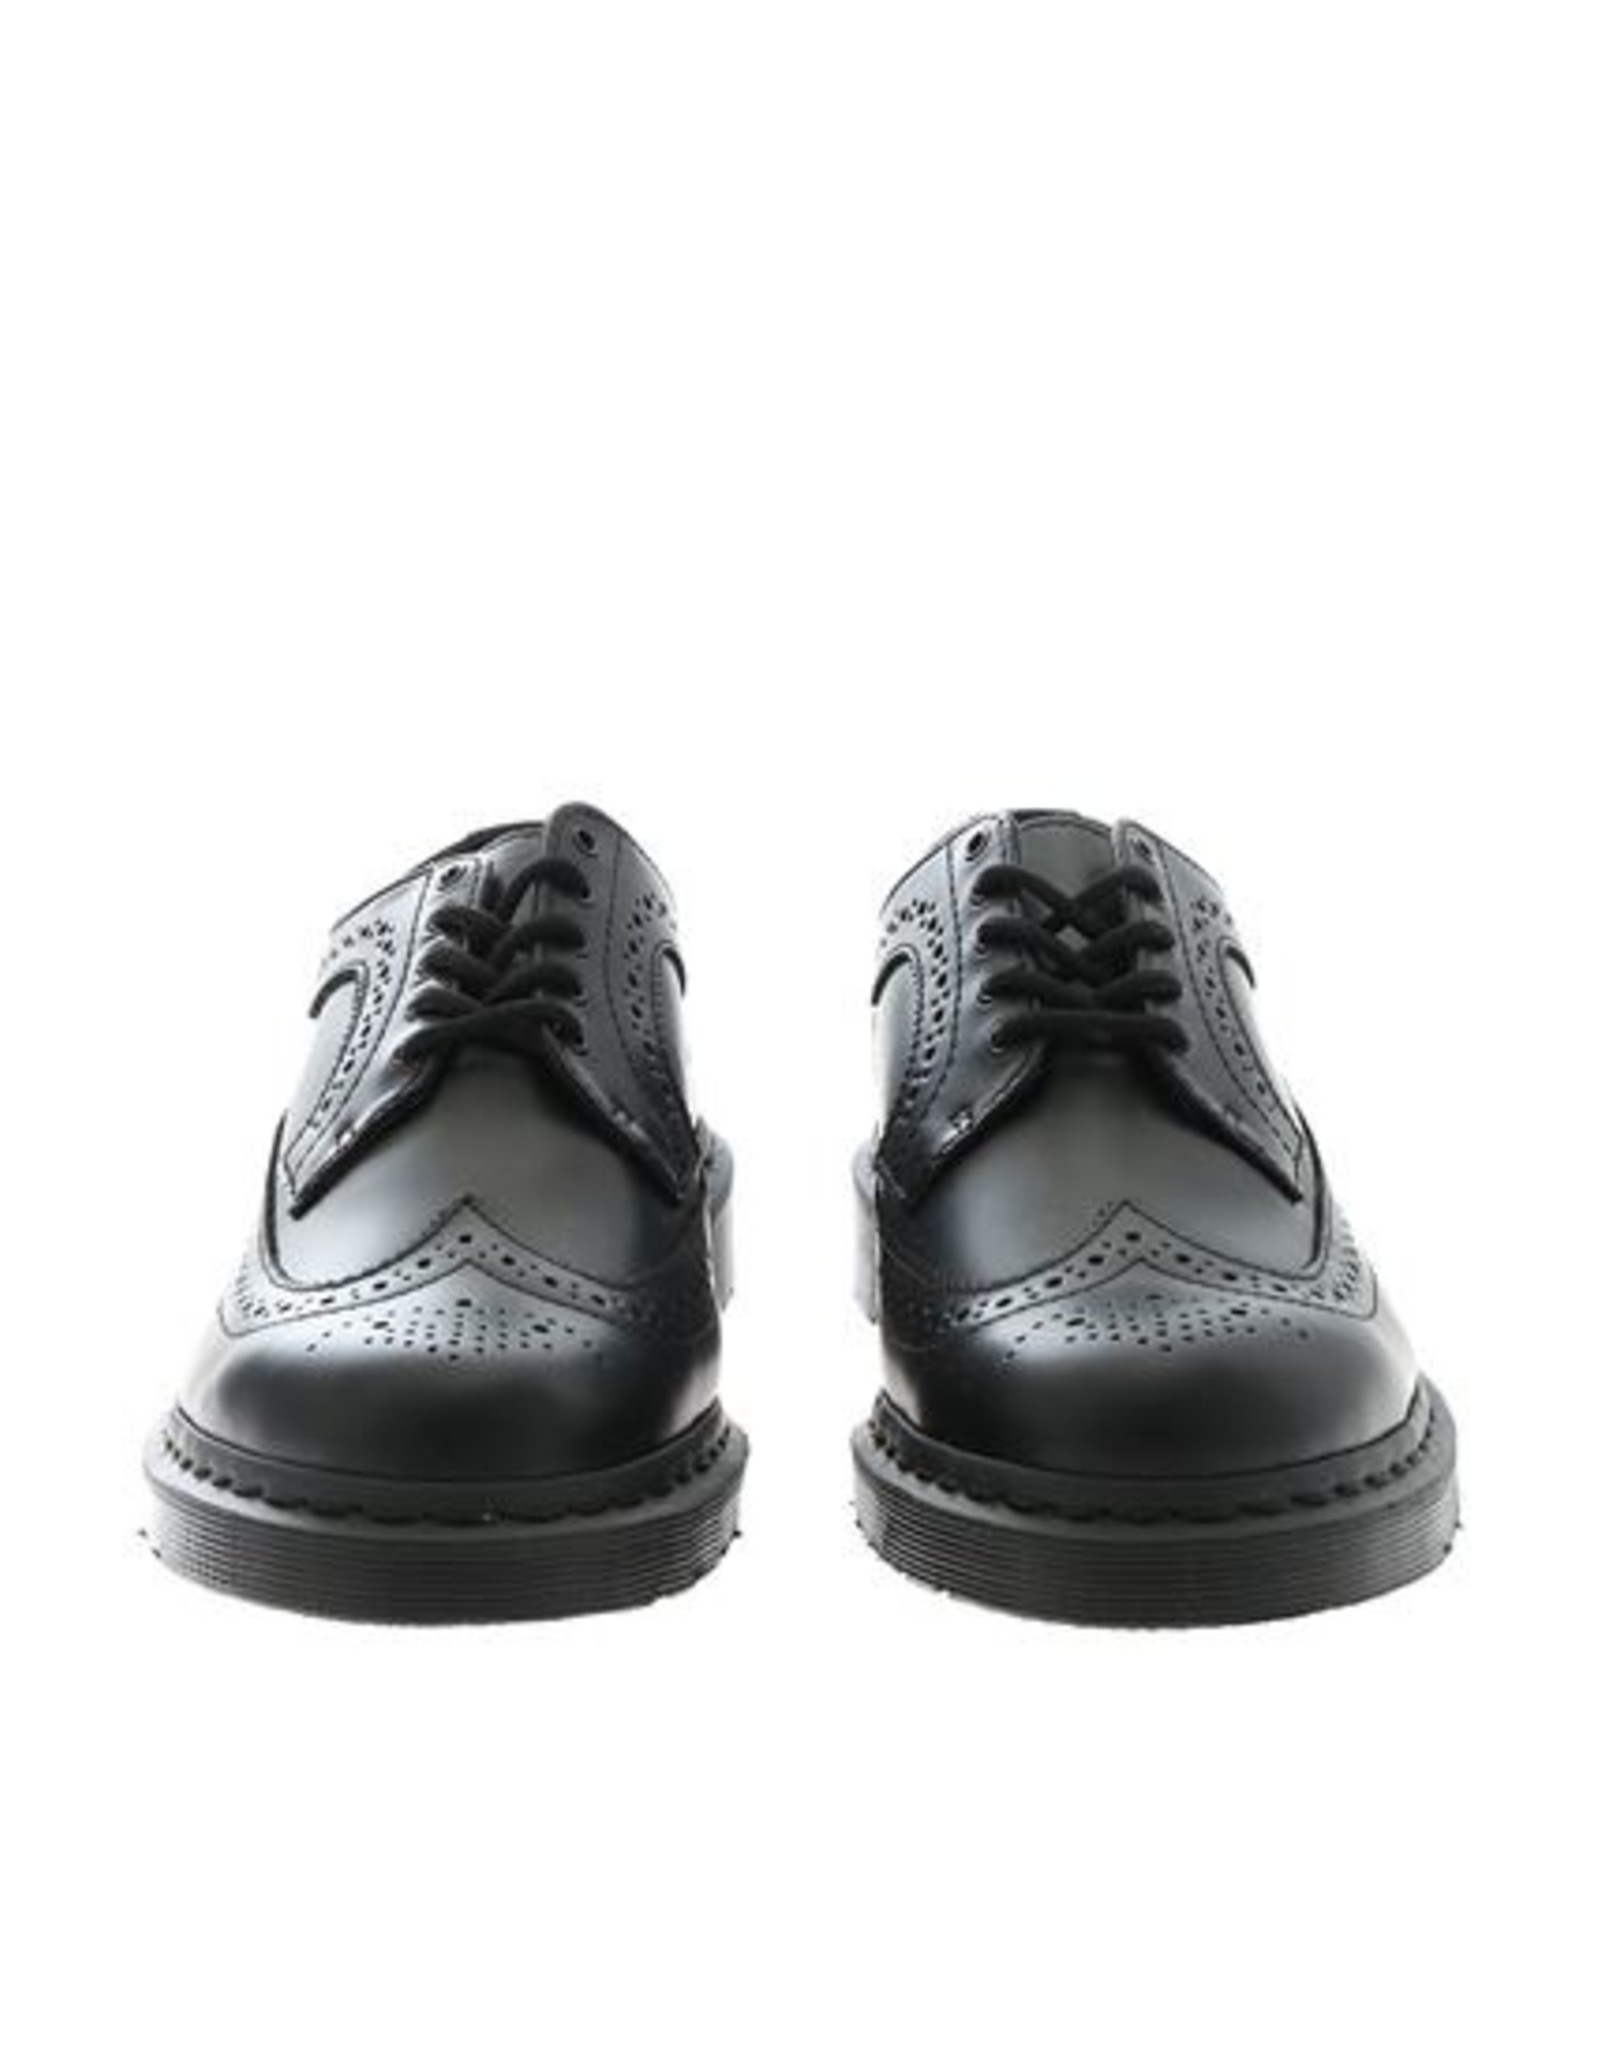 DR. MARTENS 3989 BLACK SMOOTH 502MO-R22916001